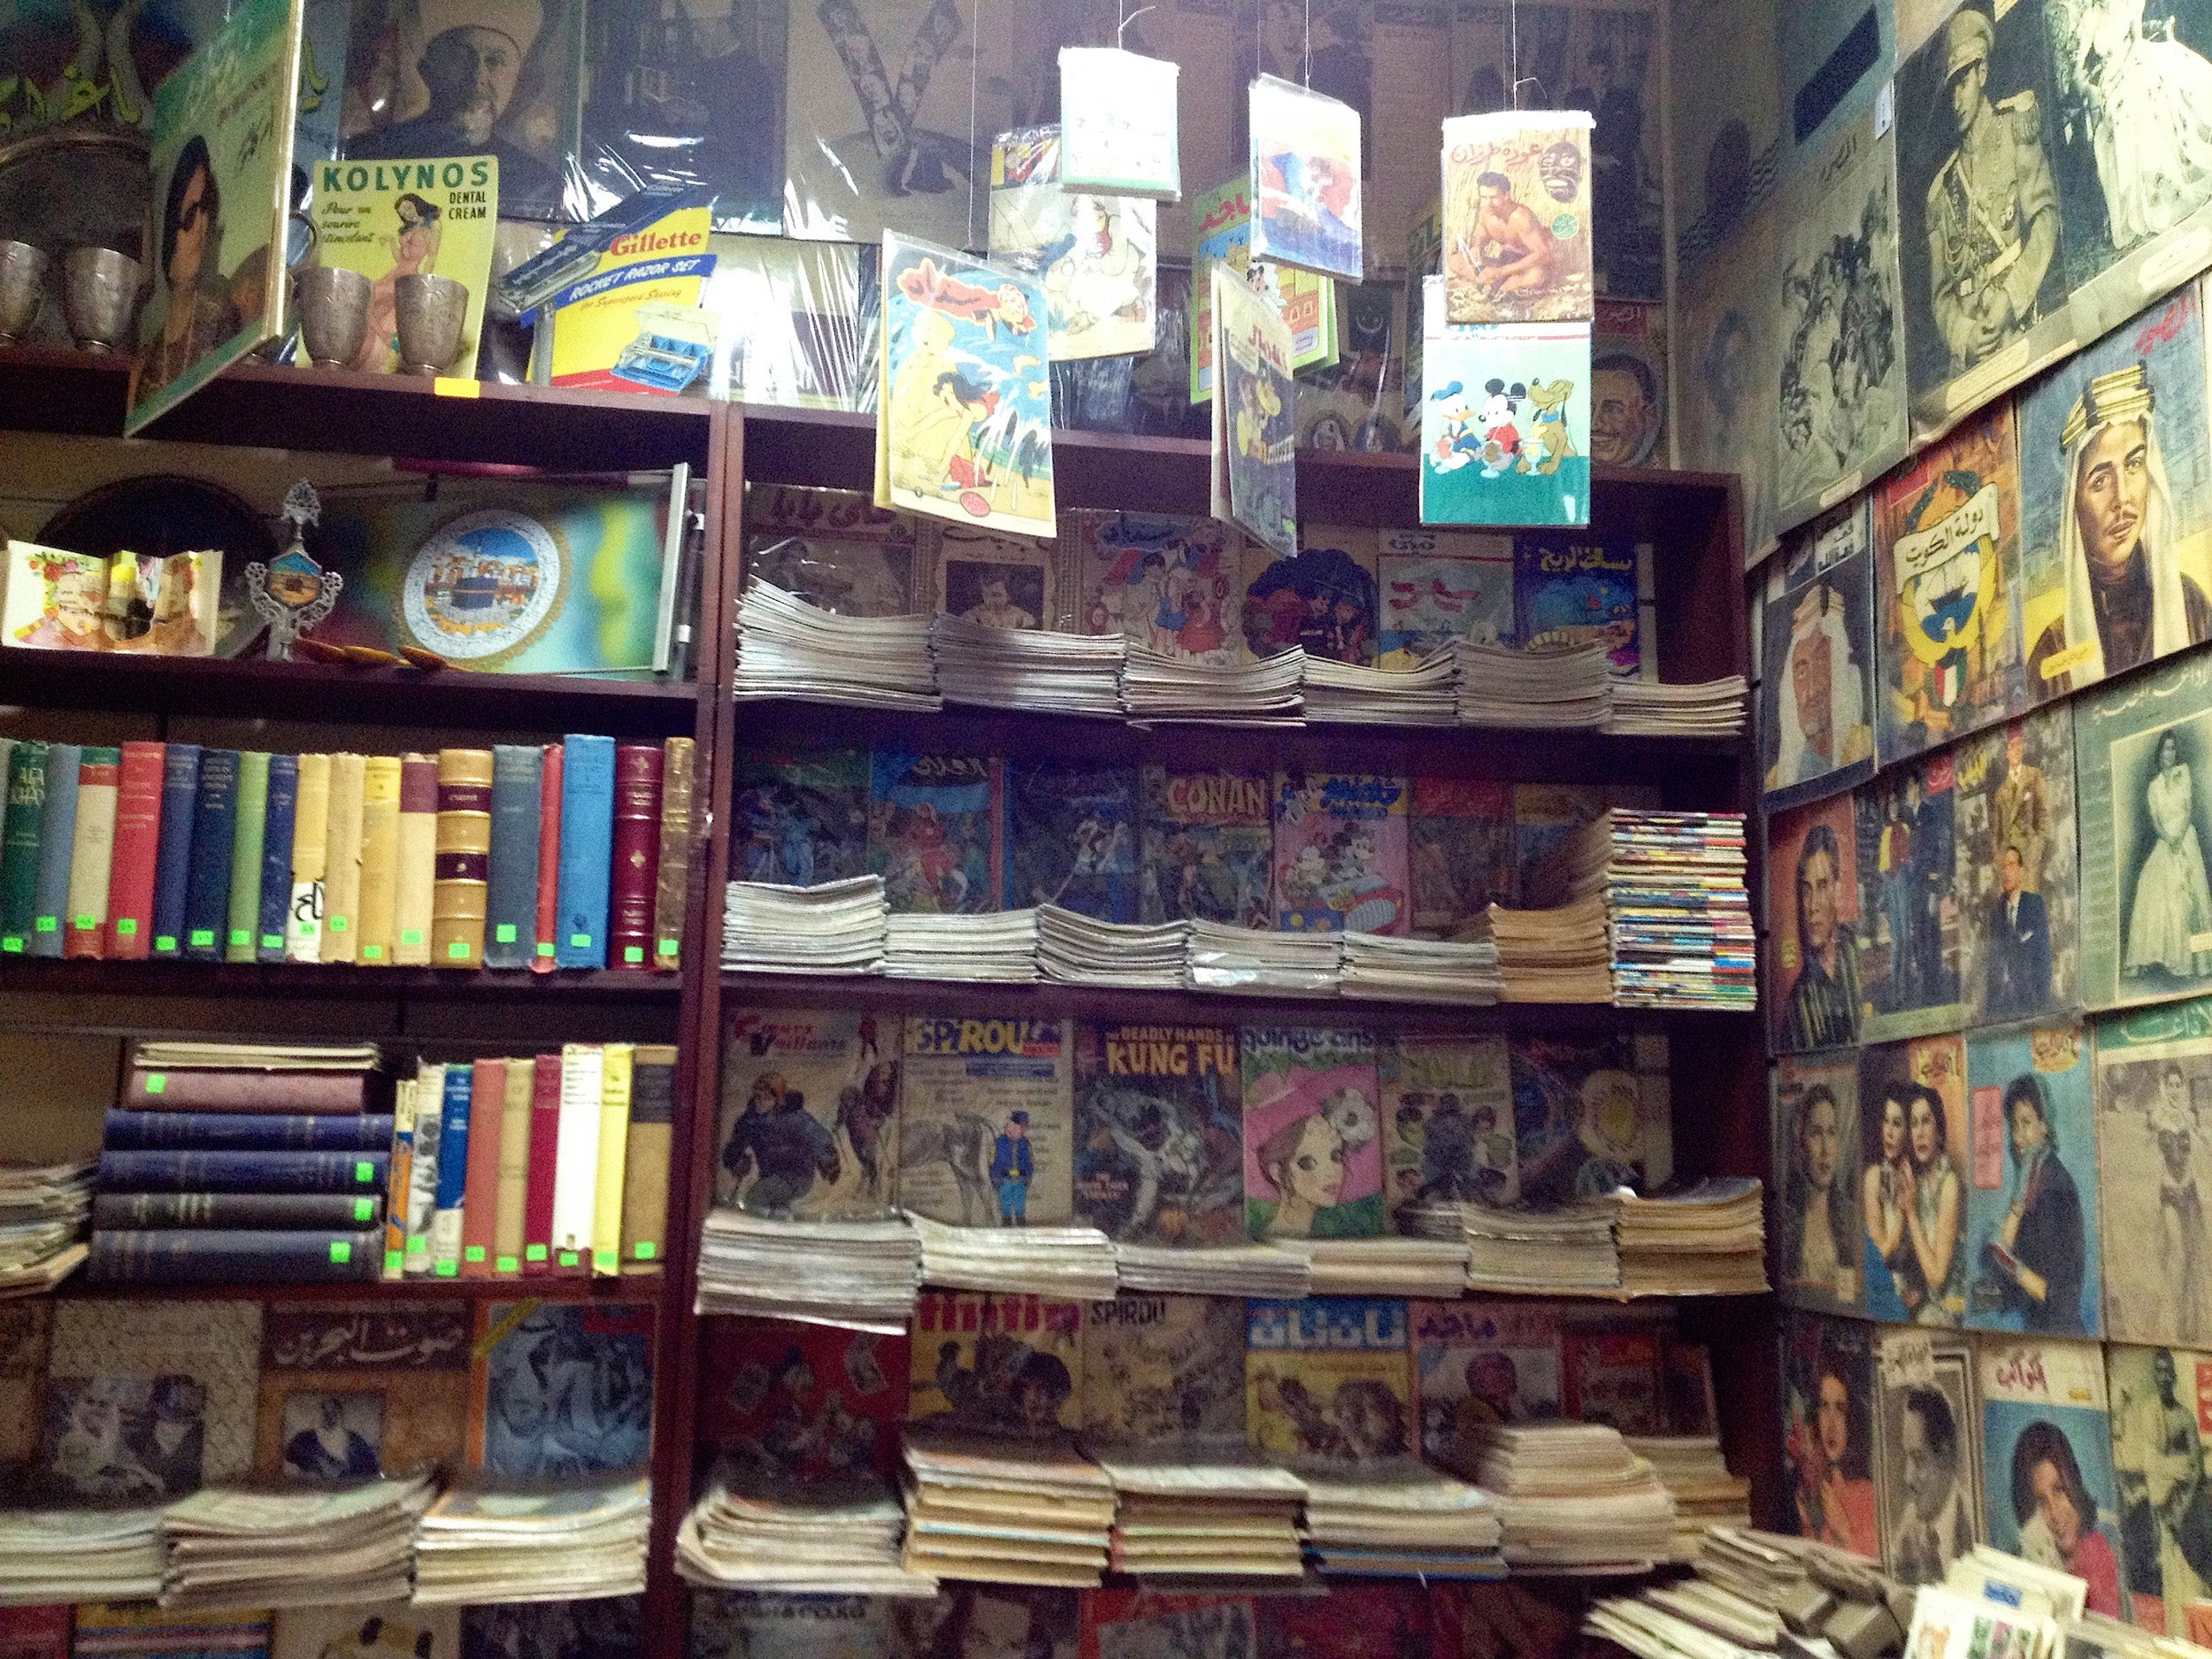 Rare magazines, books for sale in Cairo shop.